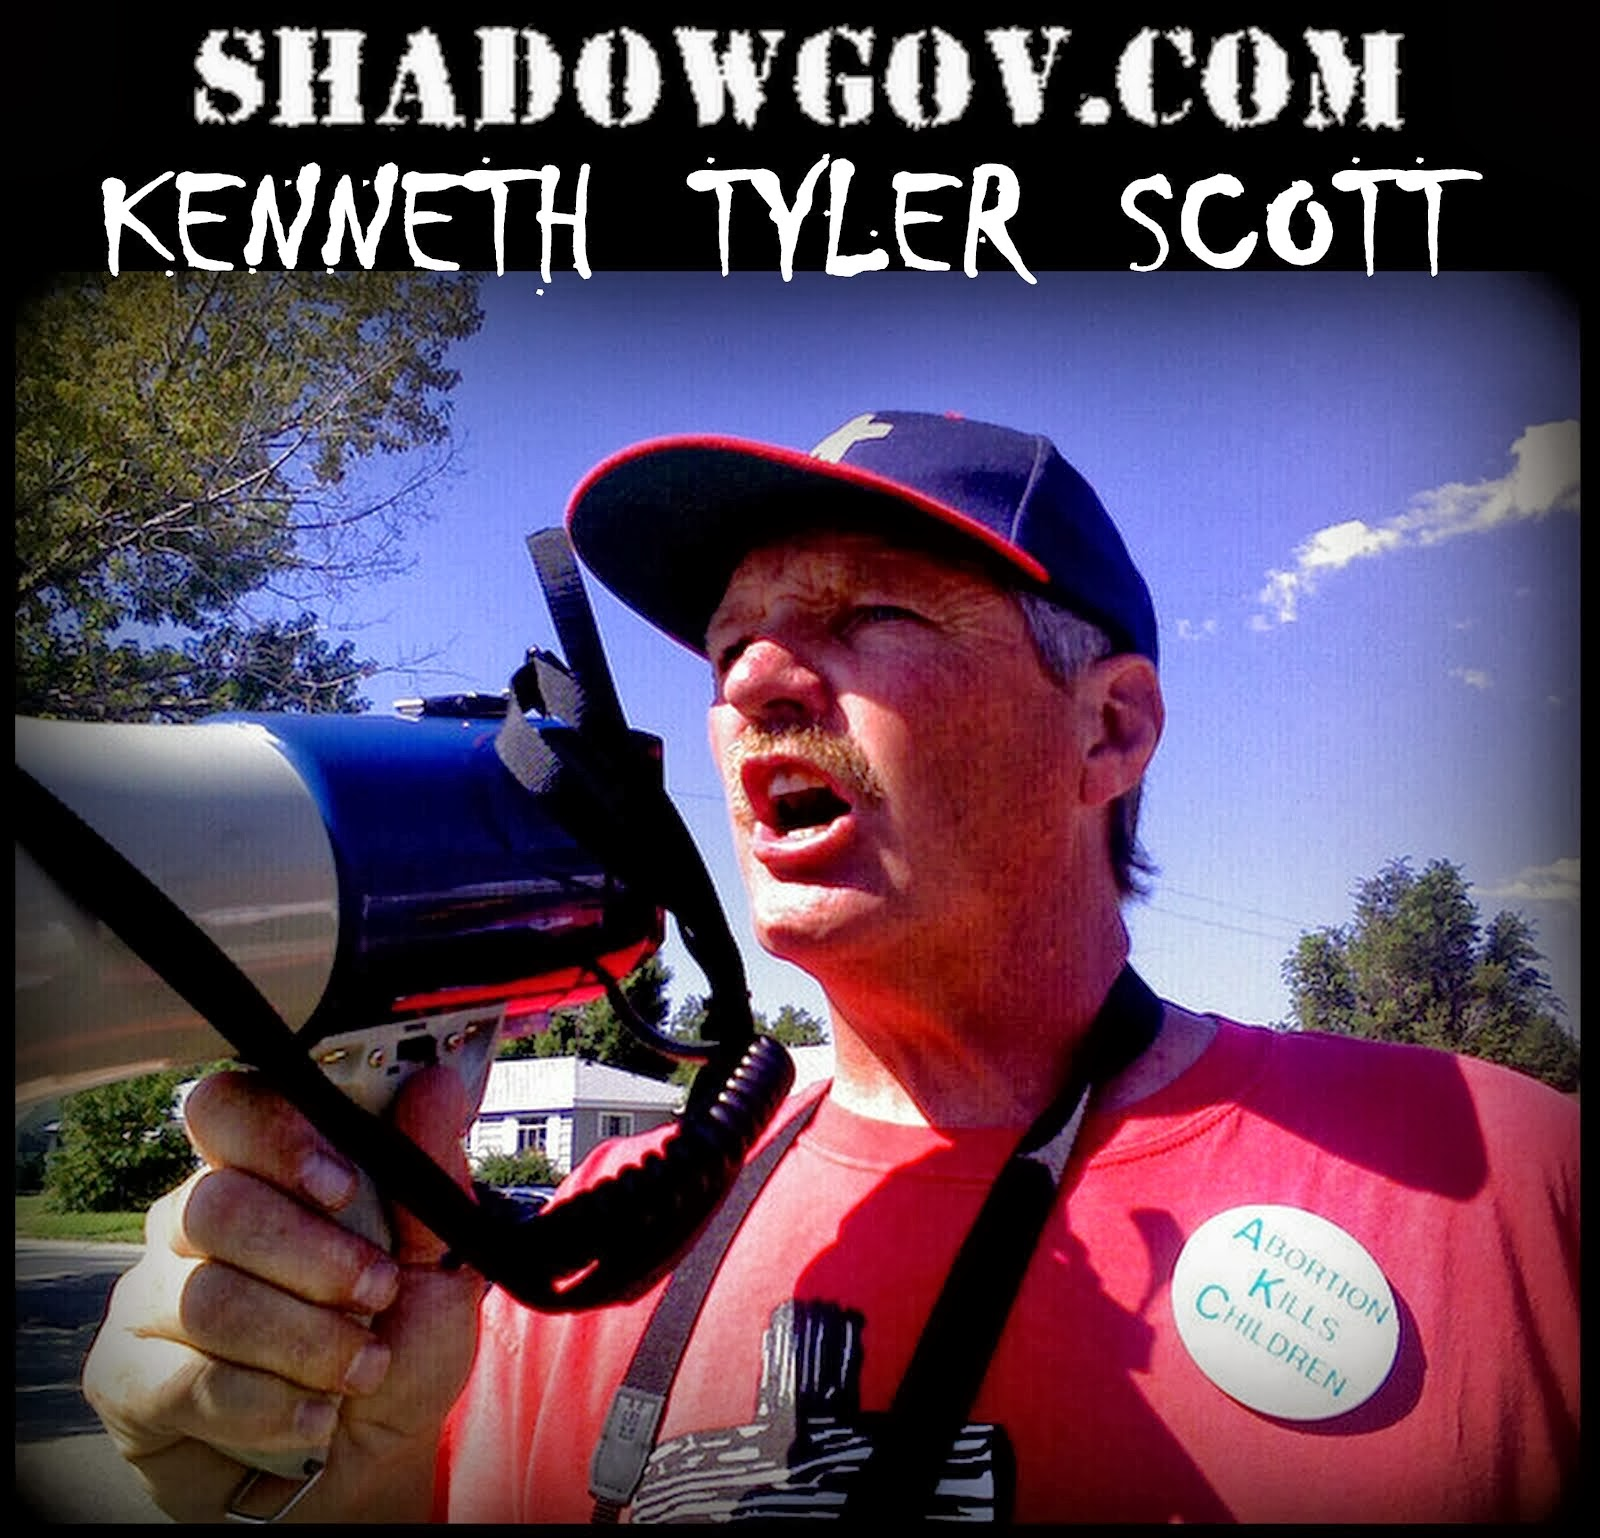 DOMESTIC TERRORIST KENNETH TYLER SCOTT